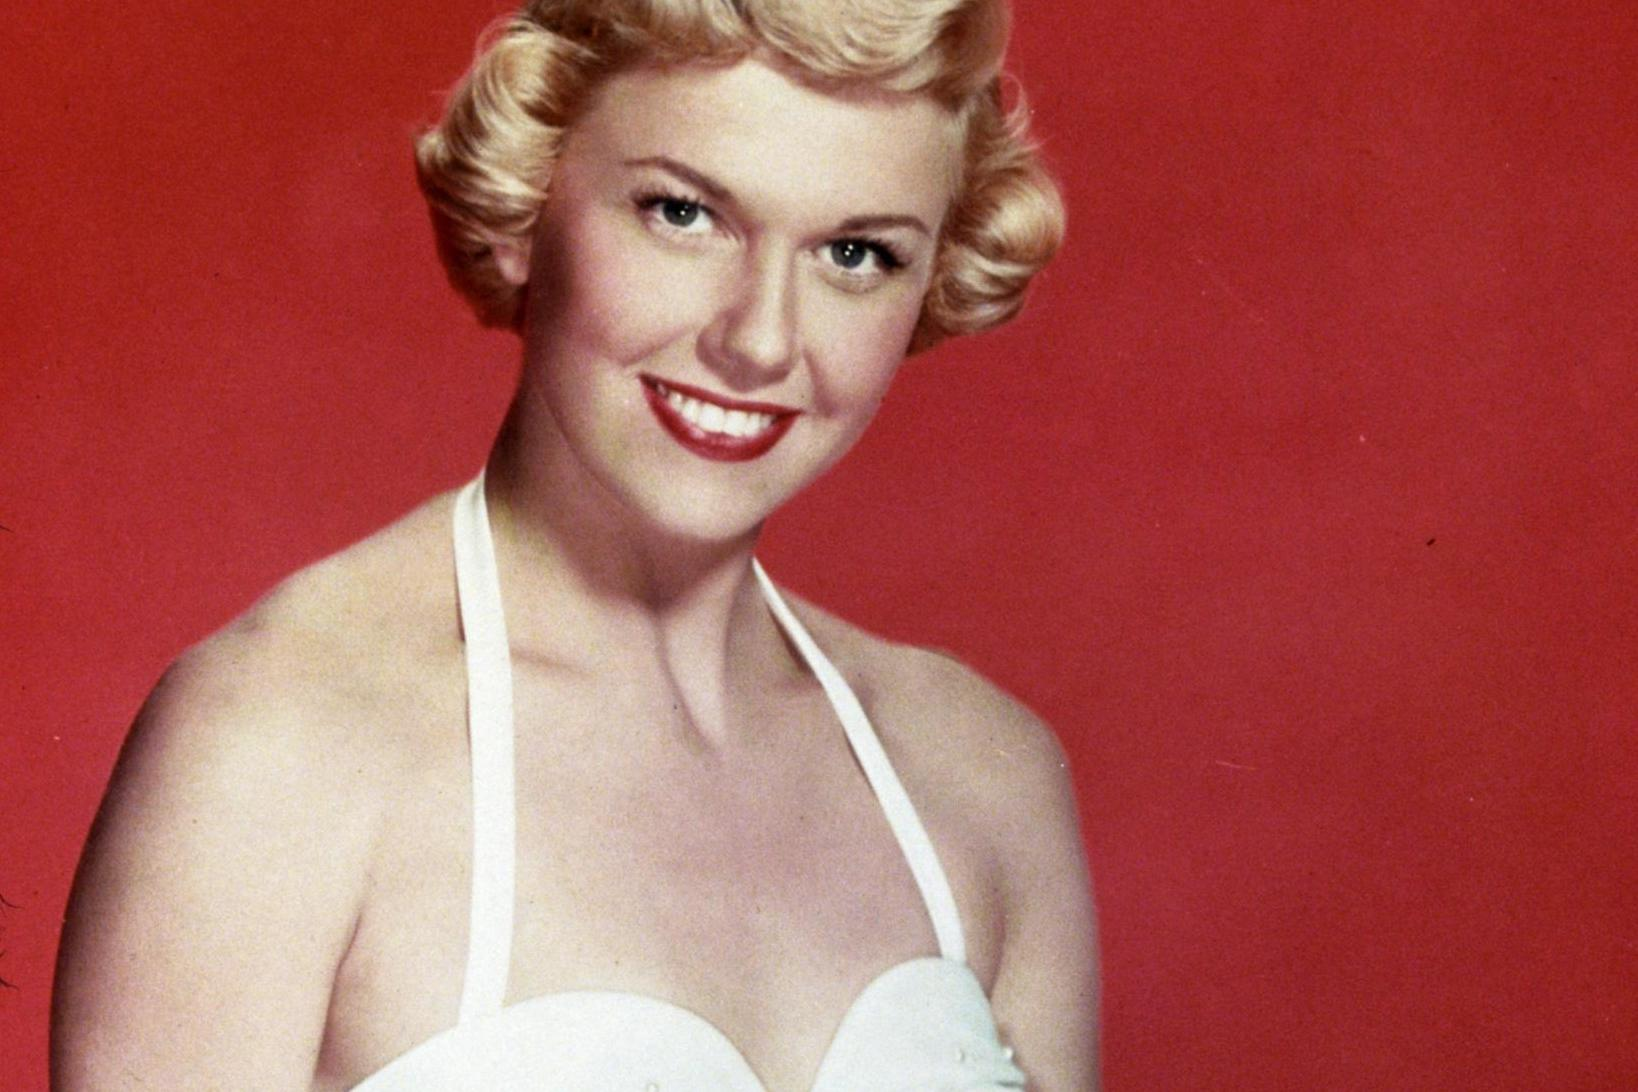 Doris Day's most memorable quotes on happiness, aging and love